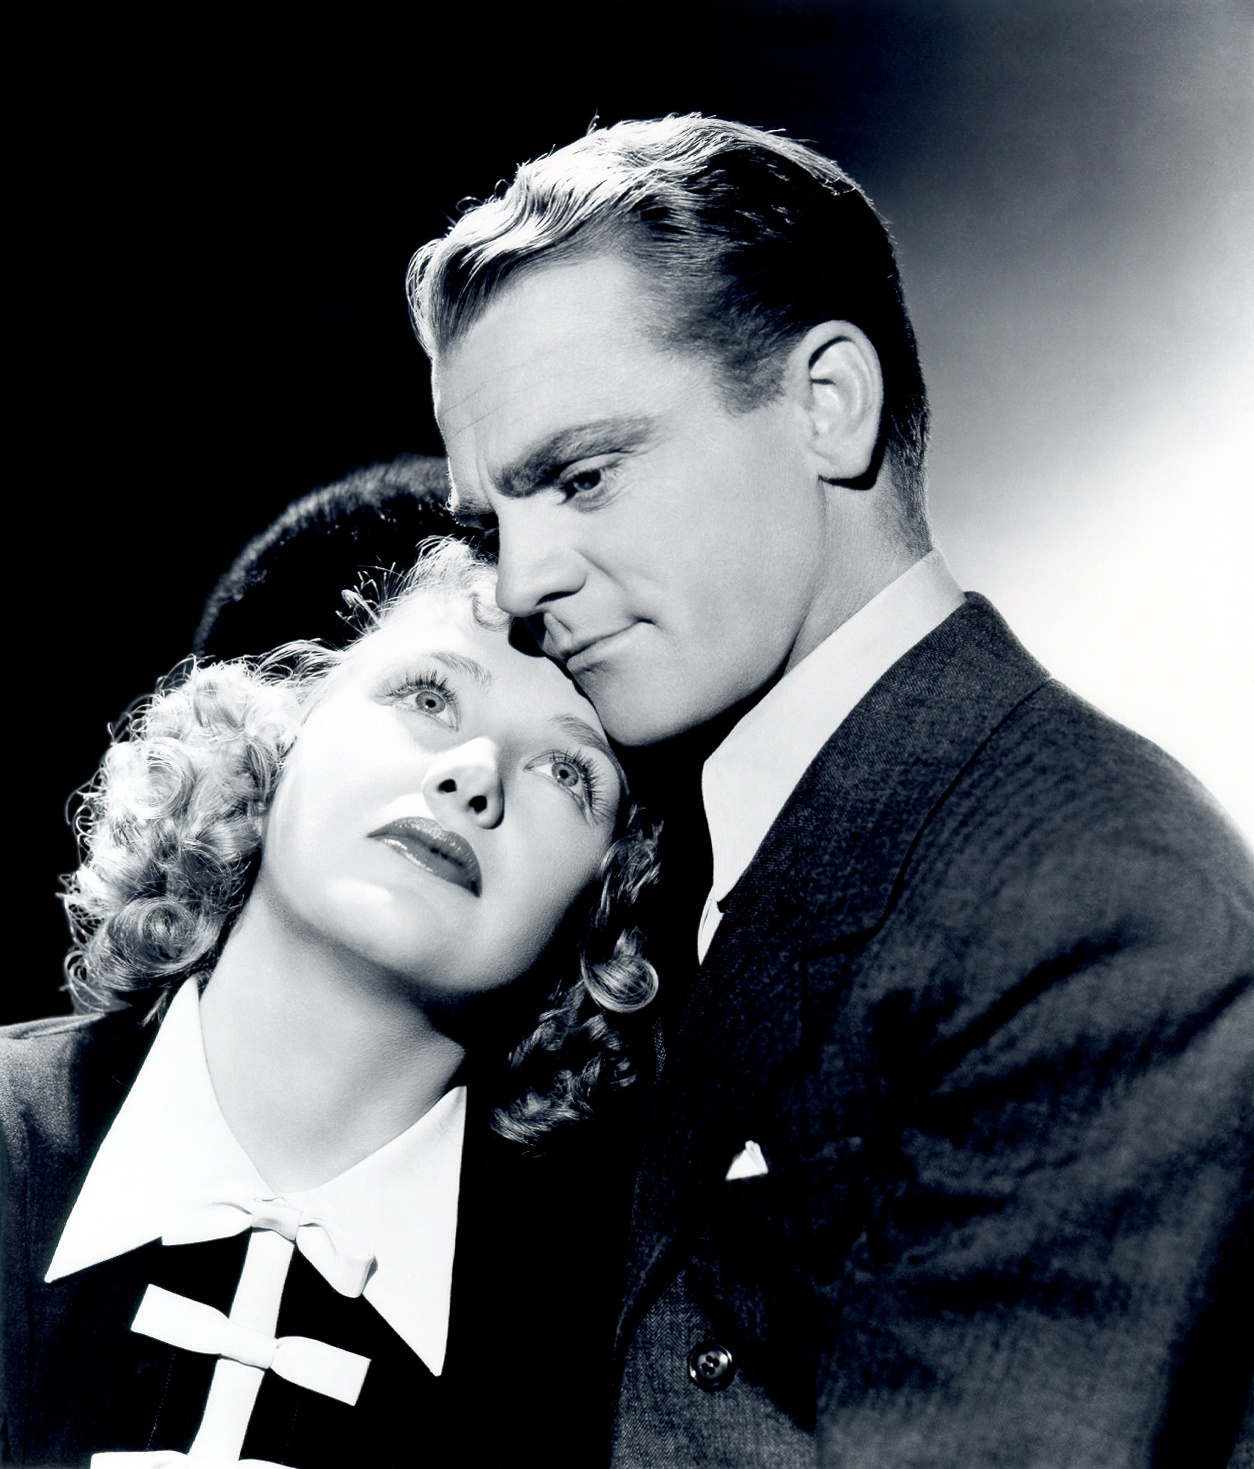 james cagney moviesjames cagney rita hayworth, james cagney height, james cagney yankee doodle dandy, james cagney and joan blondell, james cagney and bob hope, james cagney 1935, james cagney jr, james cagney documentary, james cagney filmleri izle, james cagney actor, james cagney movies, james cagney imdb, james cagney you dirty rat, james cagney public enemy, james cagney wikipedia, james cagney top of the world, james cagney interview, james cagney dancing down stairs, james cagney ragtime, james cagney stairs